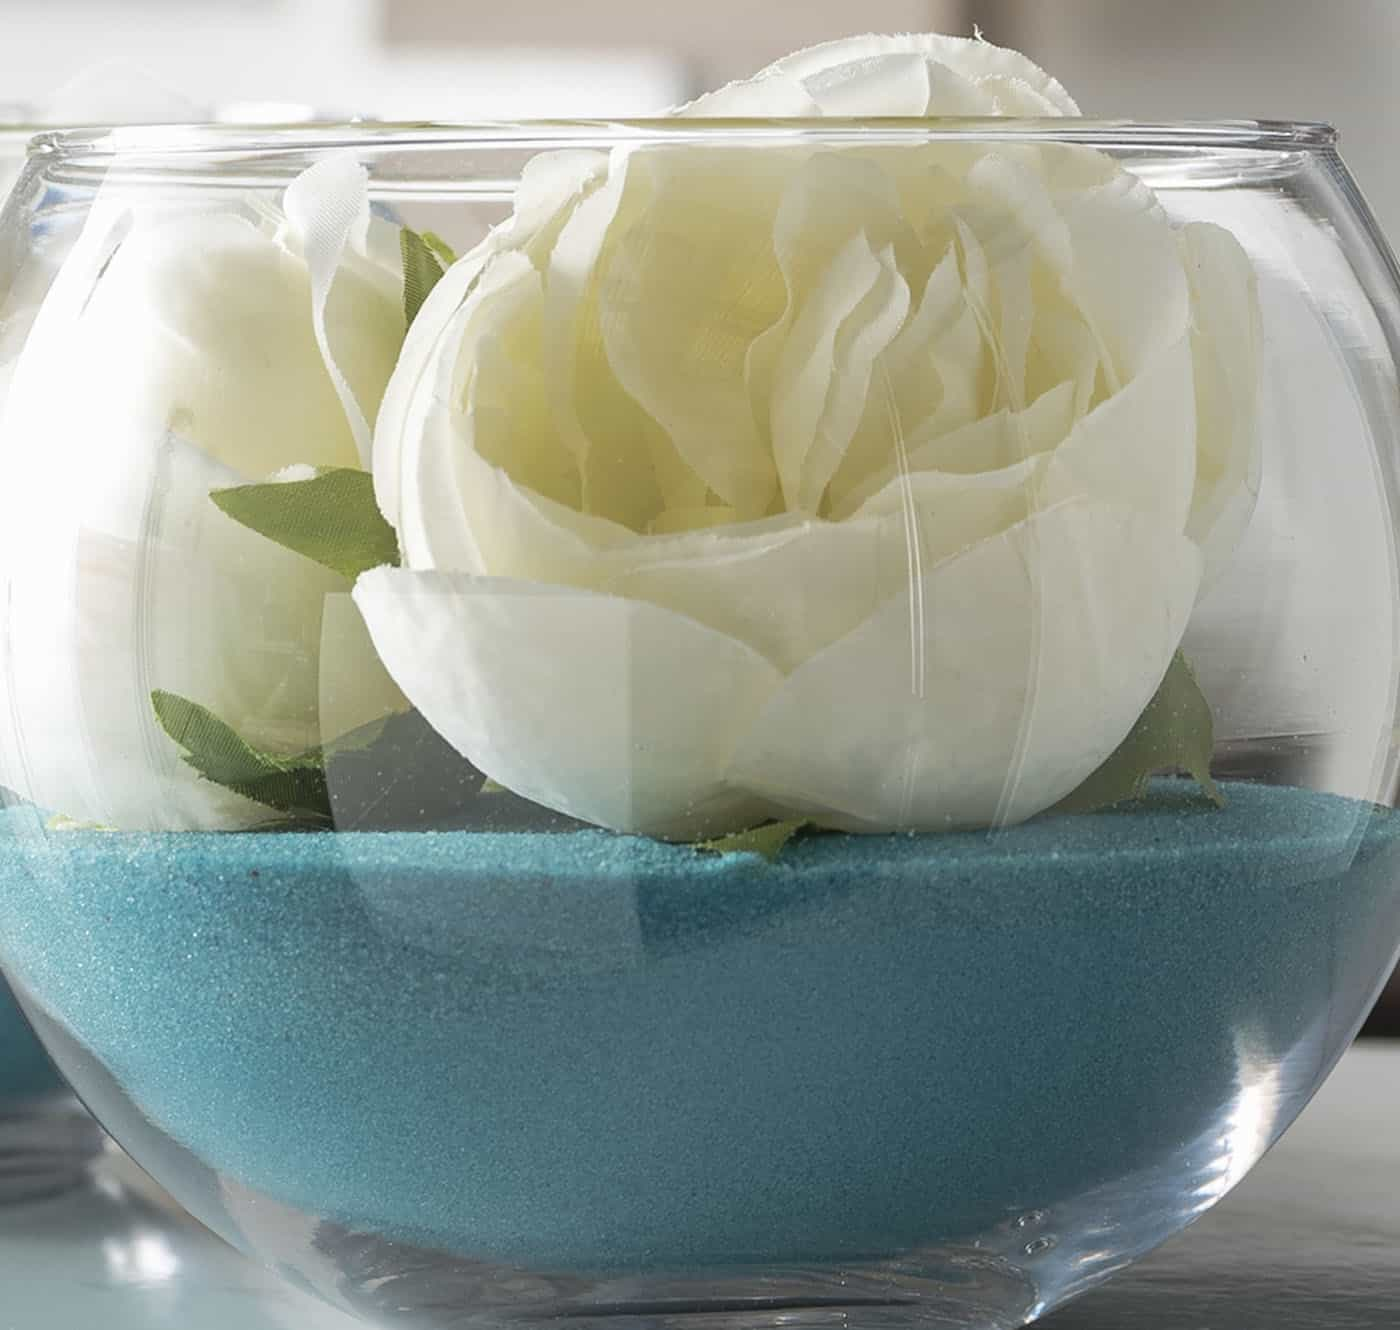 Cheap diy wedding centerpieces using craft sand, faux flowers, and glass bubble bowls